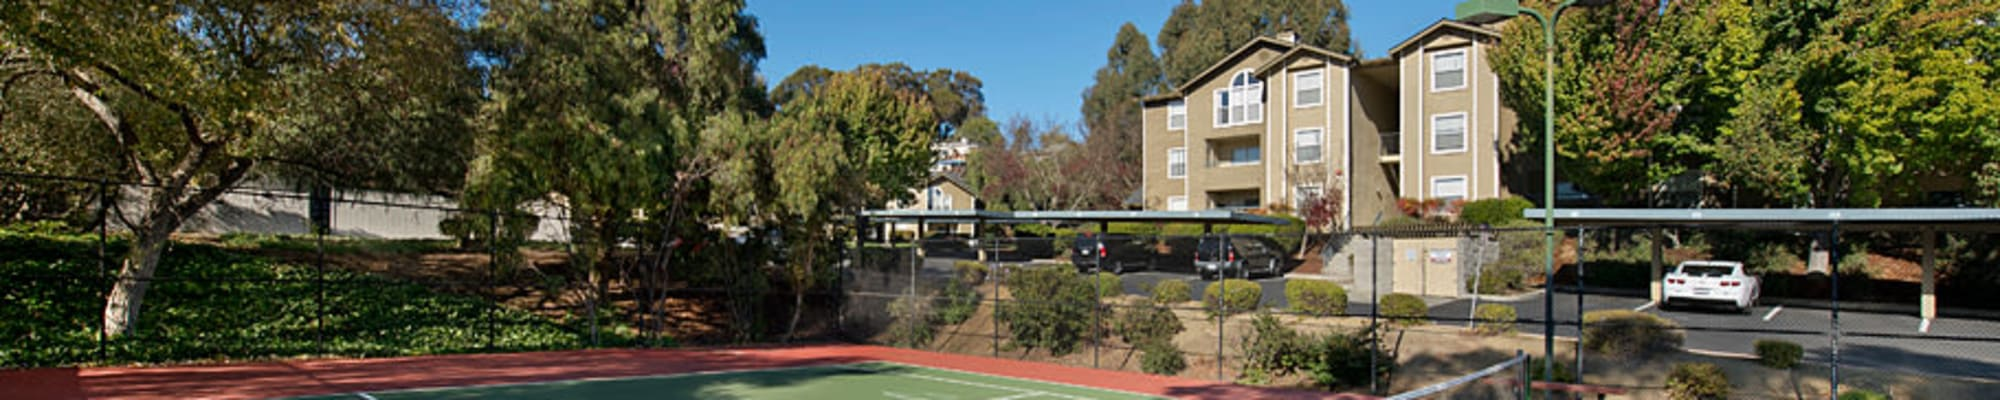 Resident perks at Sterling Heights Apartment Homes in Benicia, California